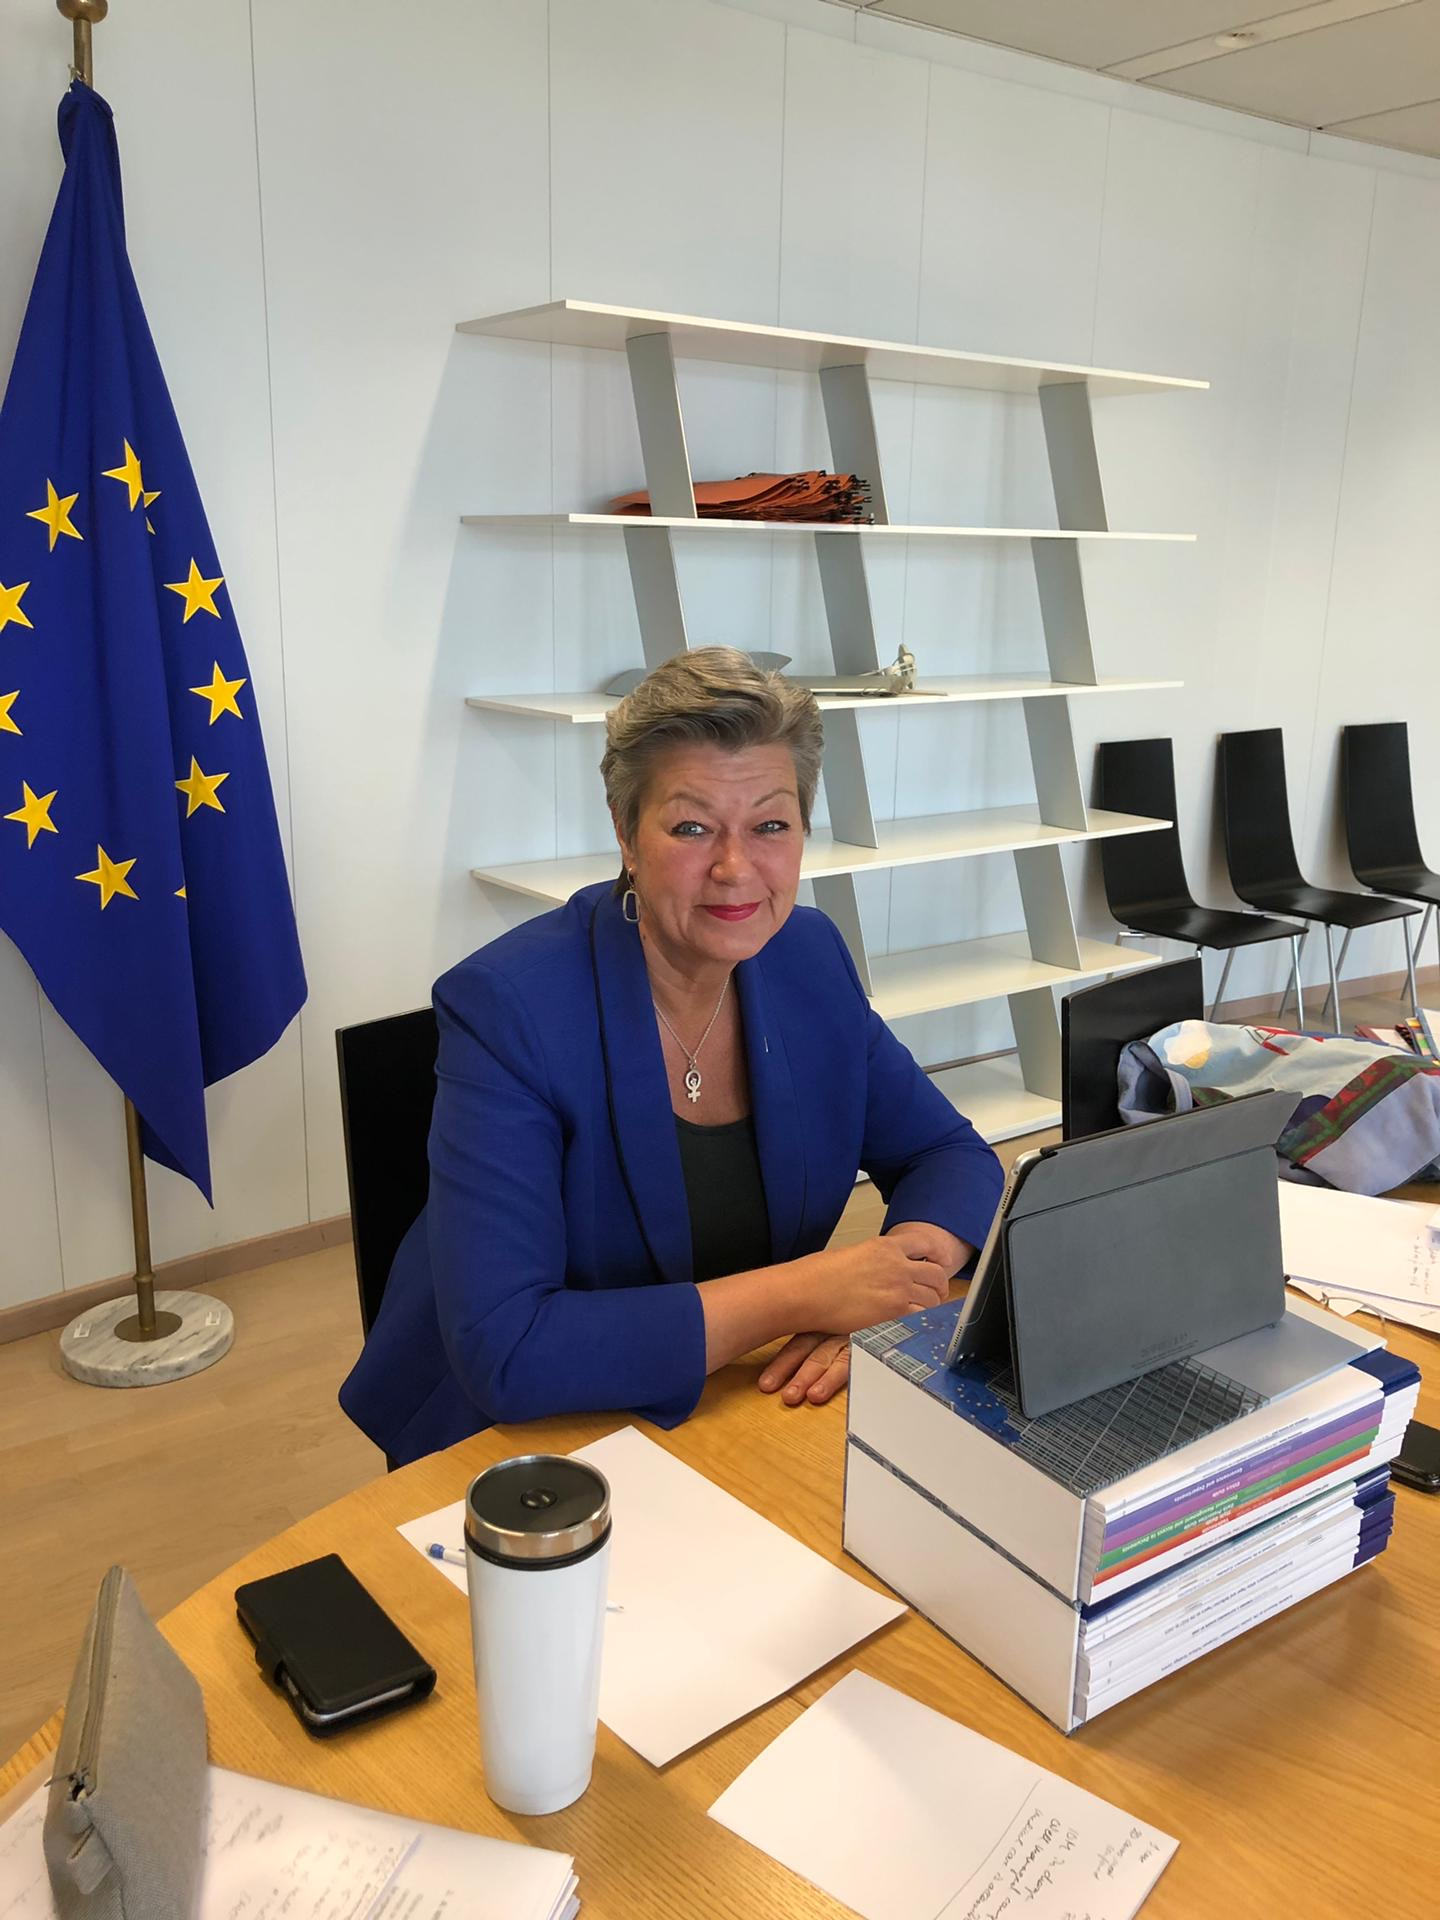 Photo Commissioner Johansson videoconference european parliament LIBE Committee 2 April 2020